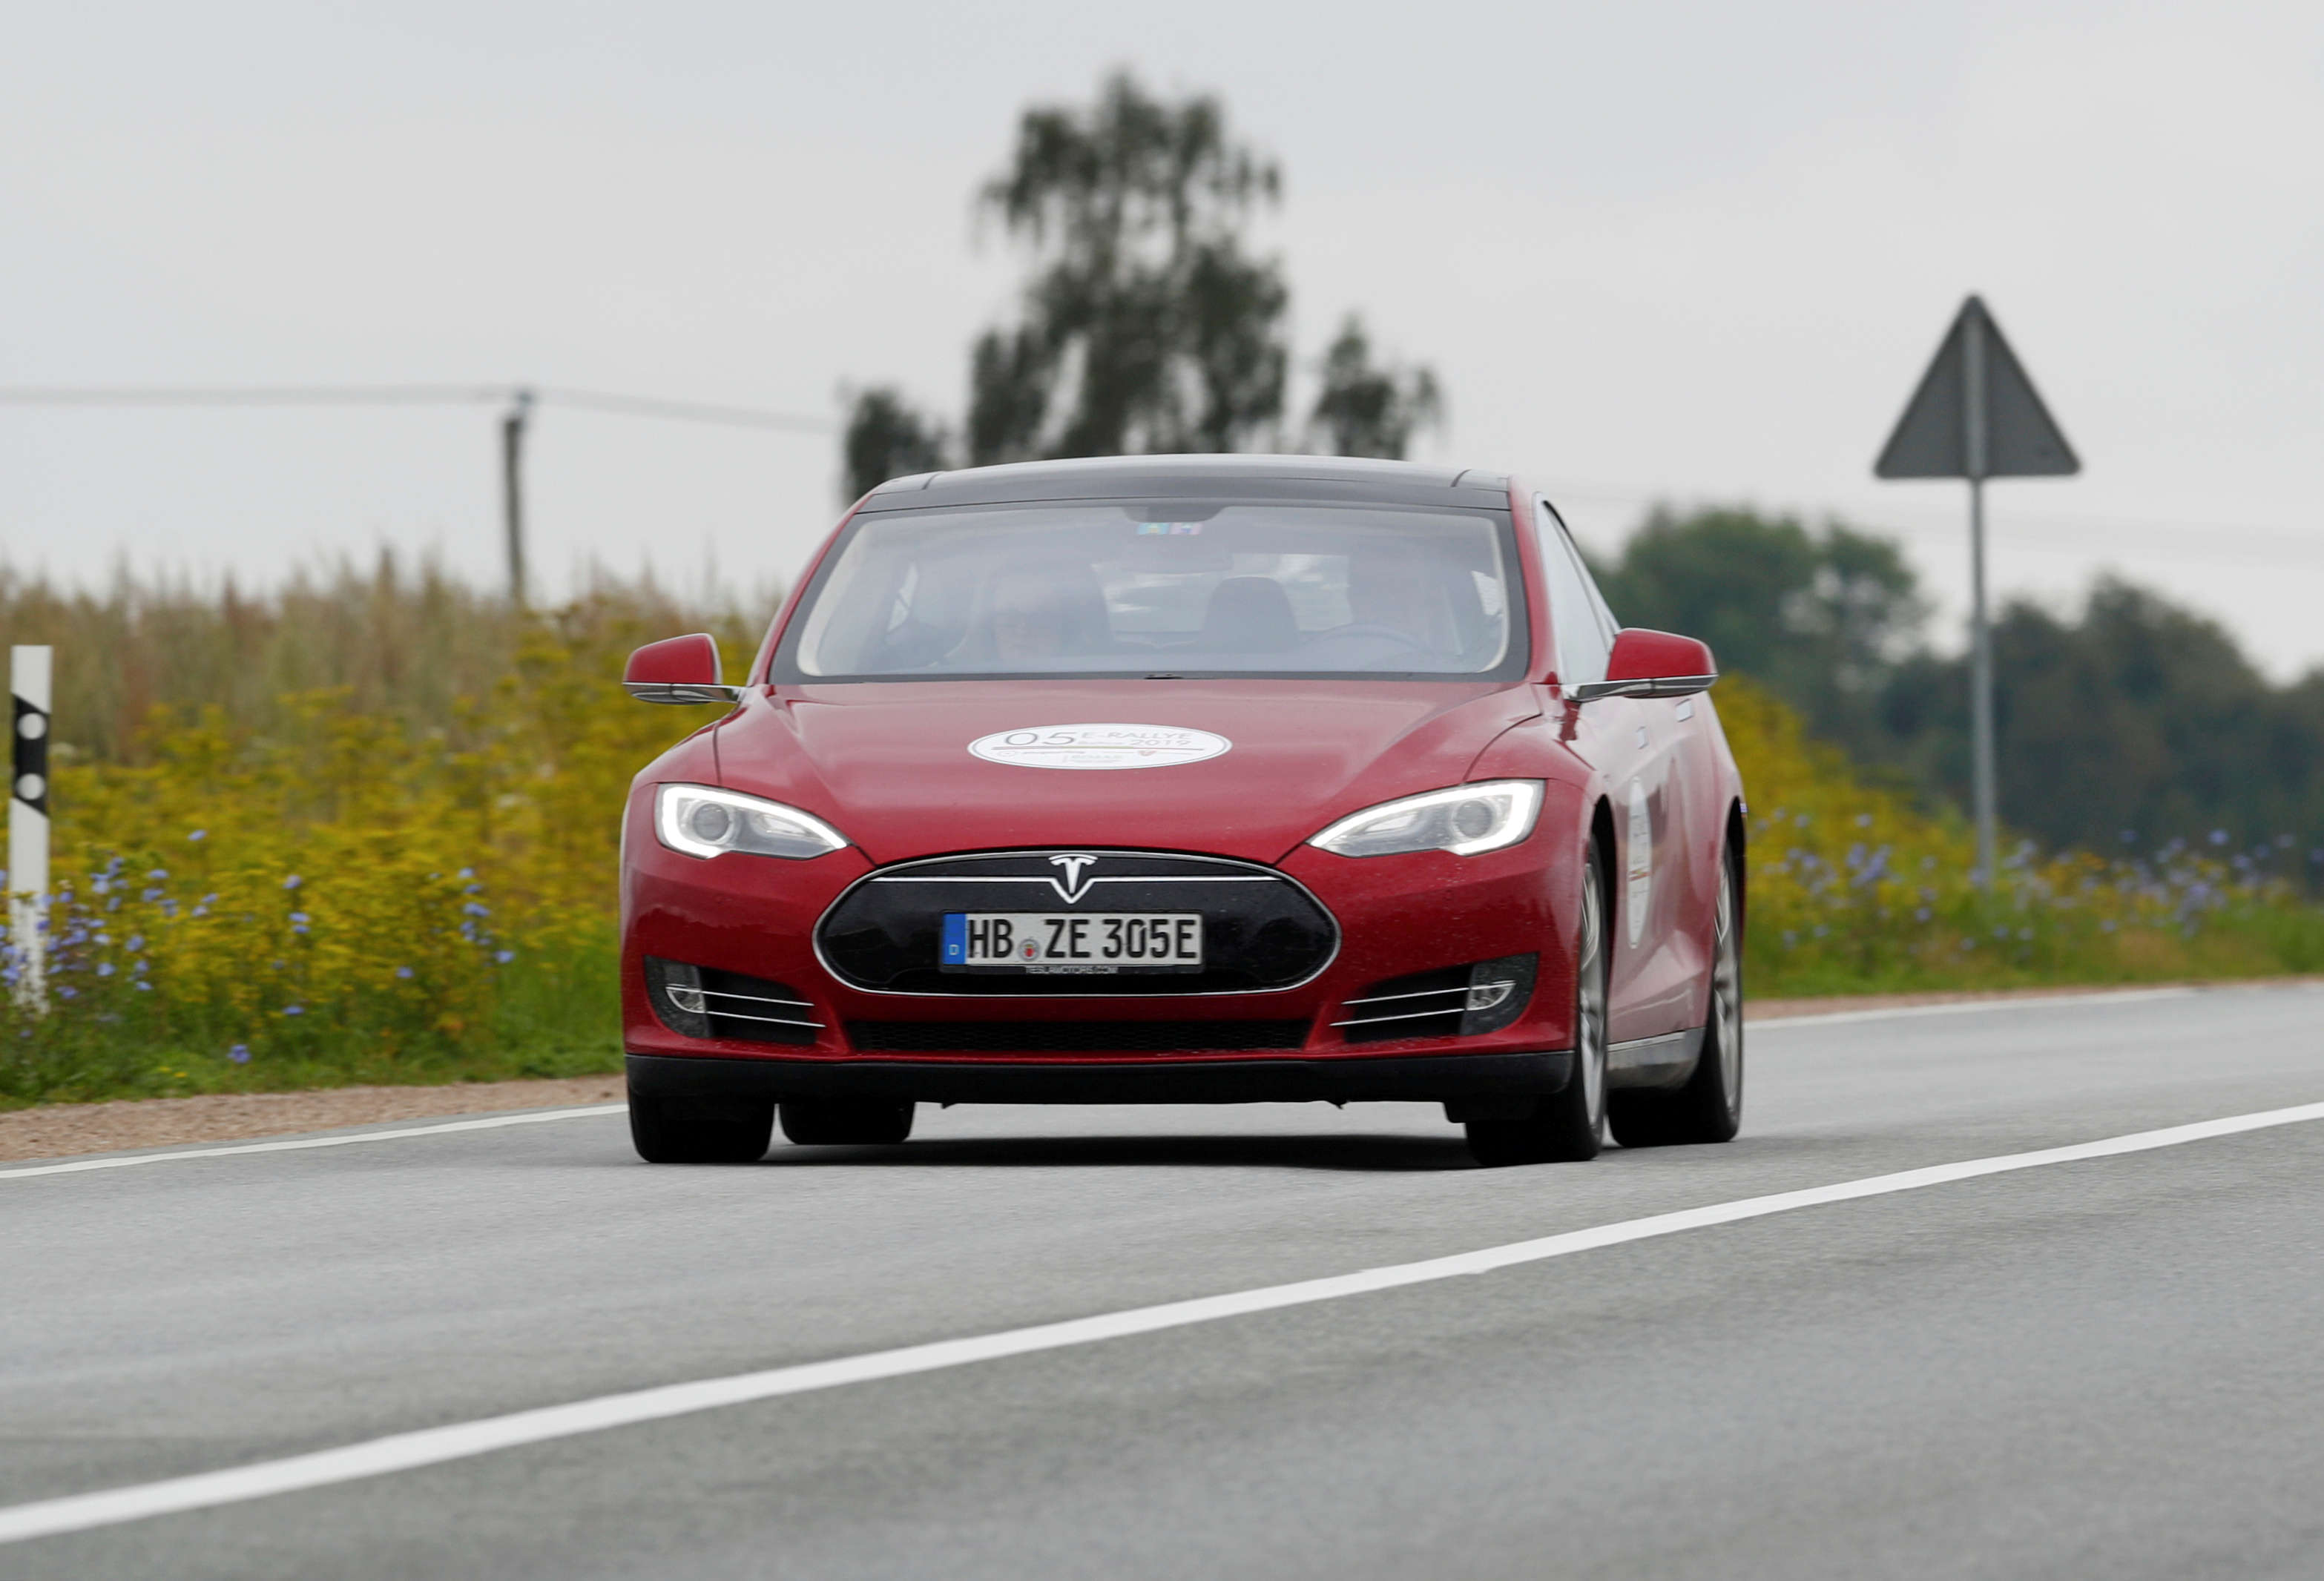 Autonomous cars still a distant future: Tesla's 'full self-driving' vehicles can't drive themselves